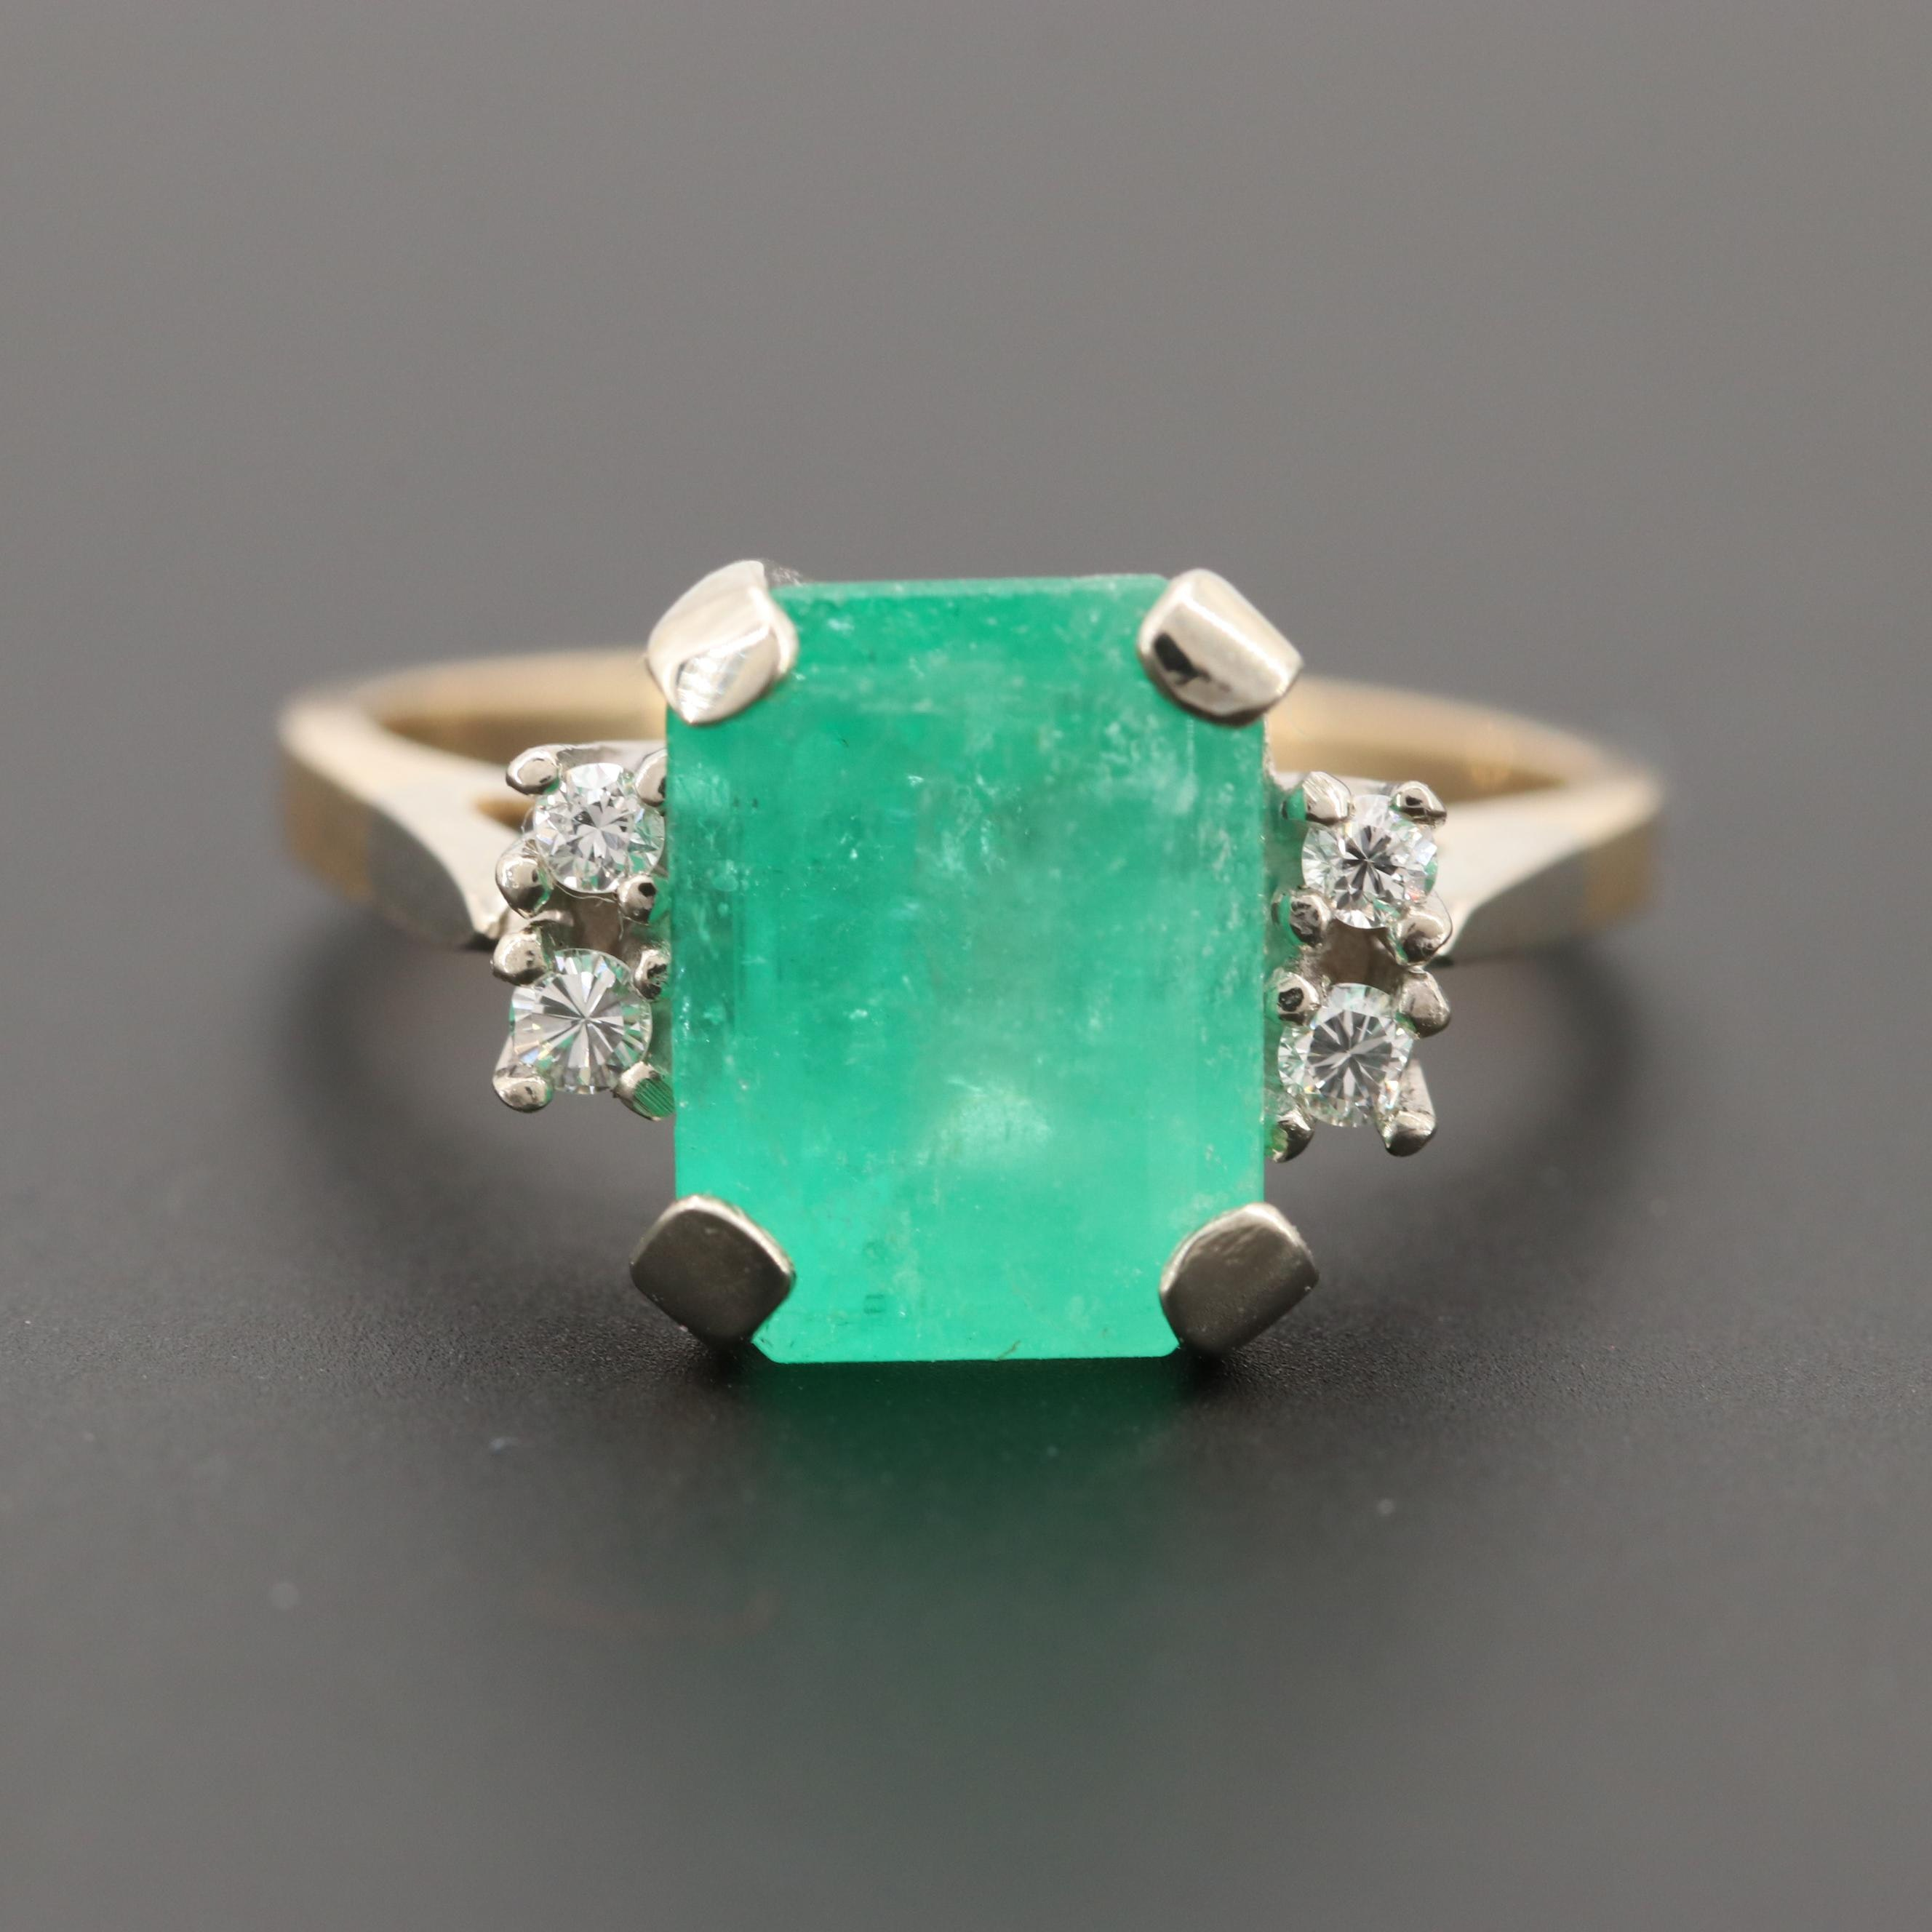 14K Yellow and White Gold 3.41 CT Emerald and Diamond Ring